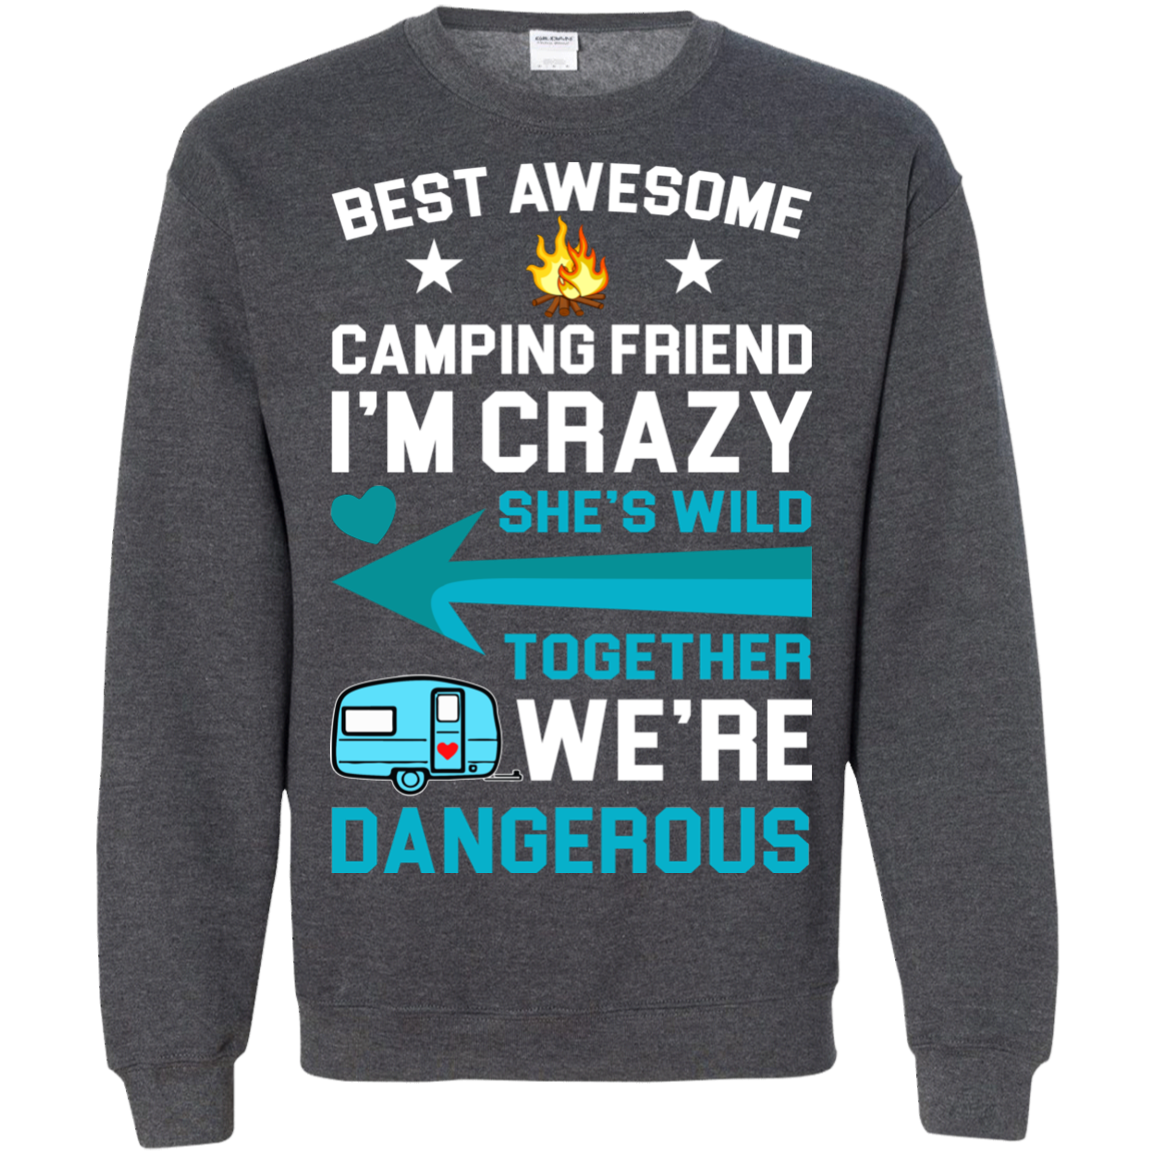 Camping T shirts Best Awesome Camping Friend Hoodies Sweatshirts TH